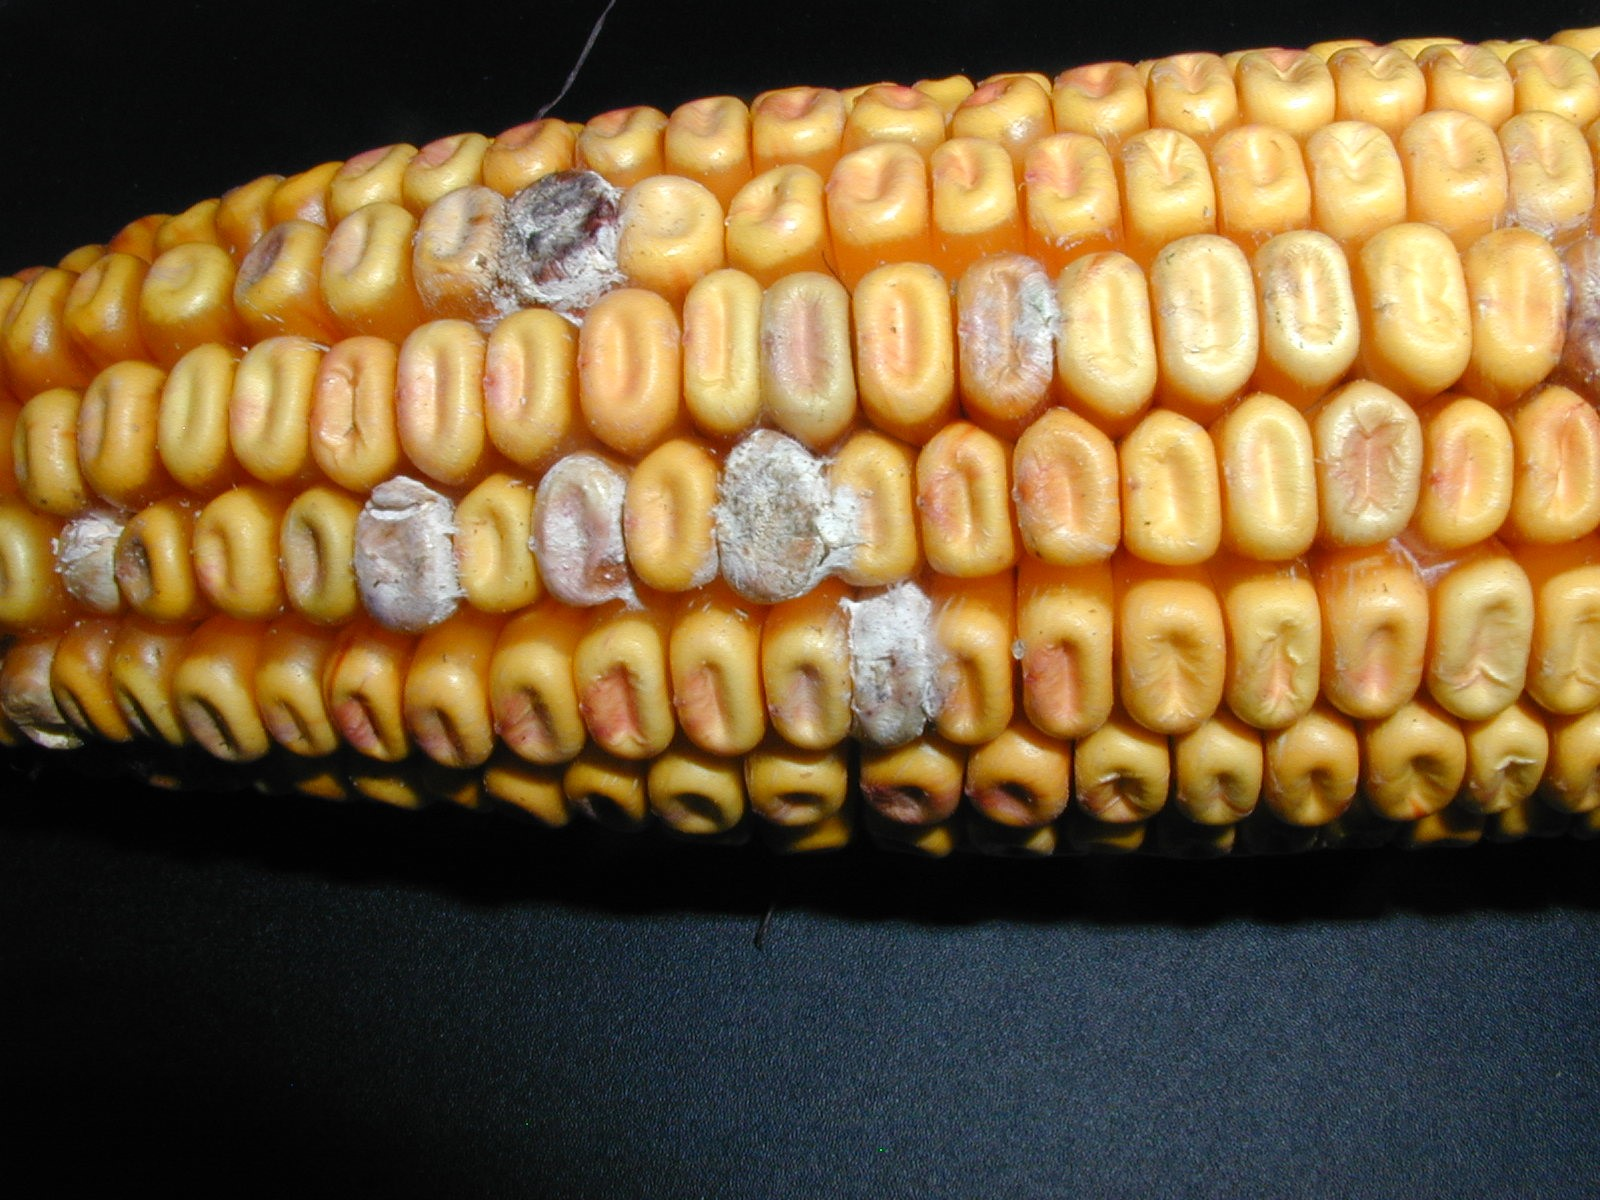 Single kernels with white or grayish mould